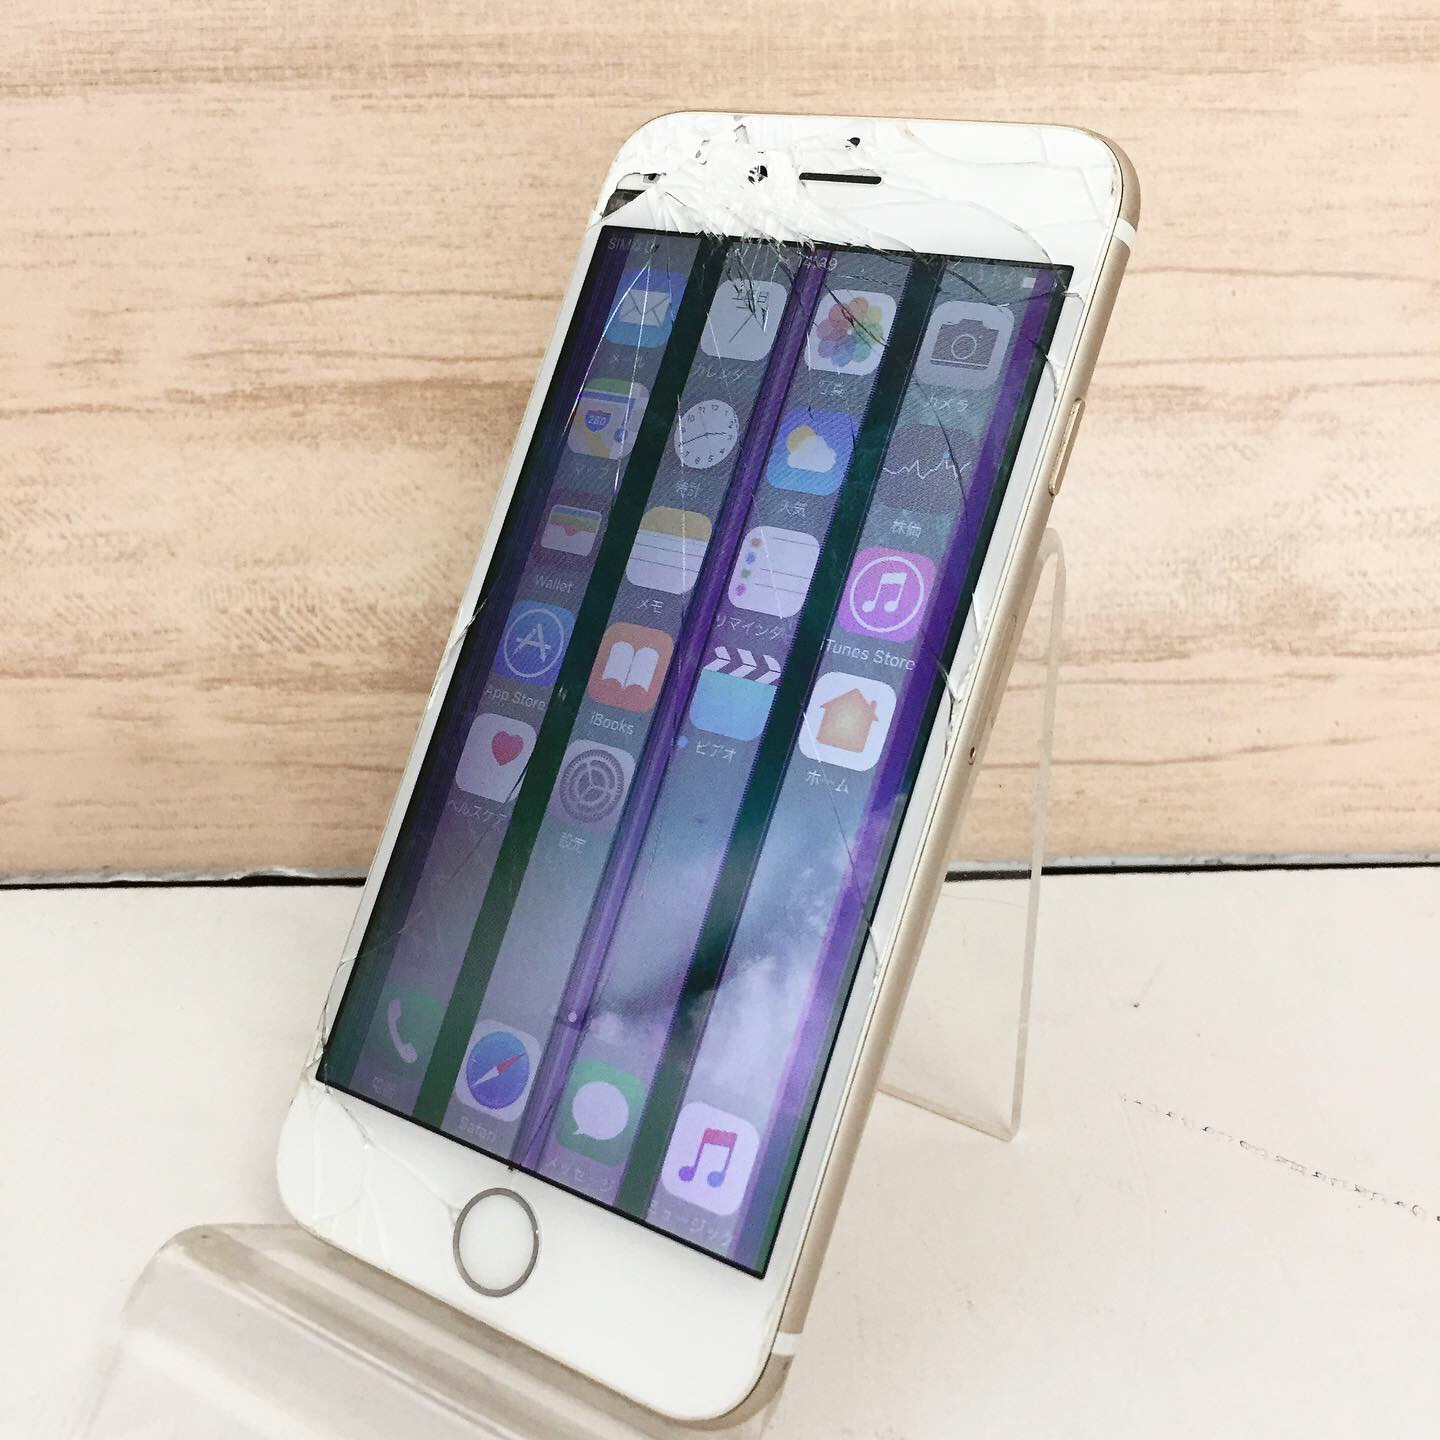 Apple iPhone6 64GB ゴールド MG4J2J/A SoftBank★ジャンク品買取★